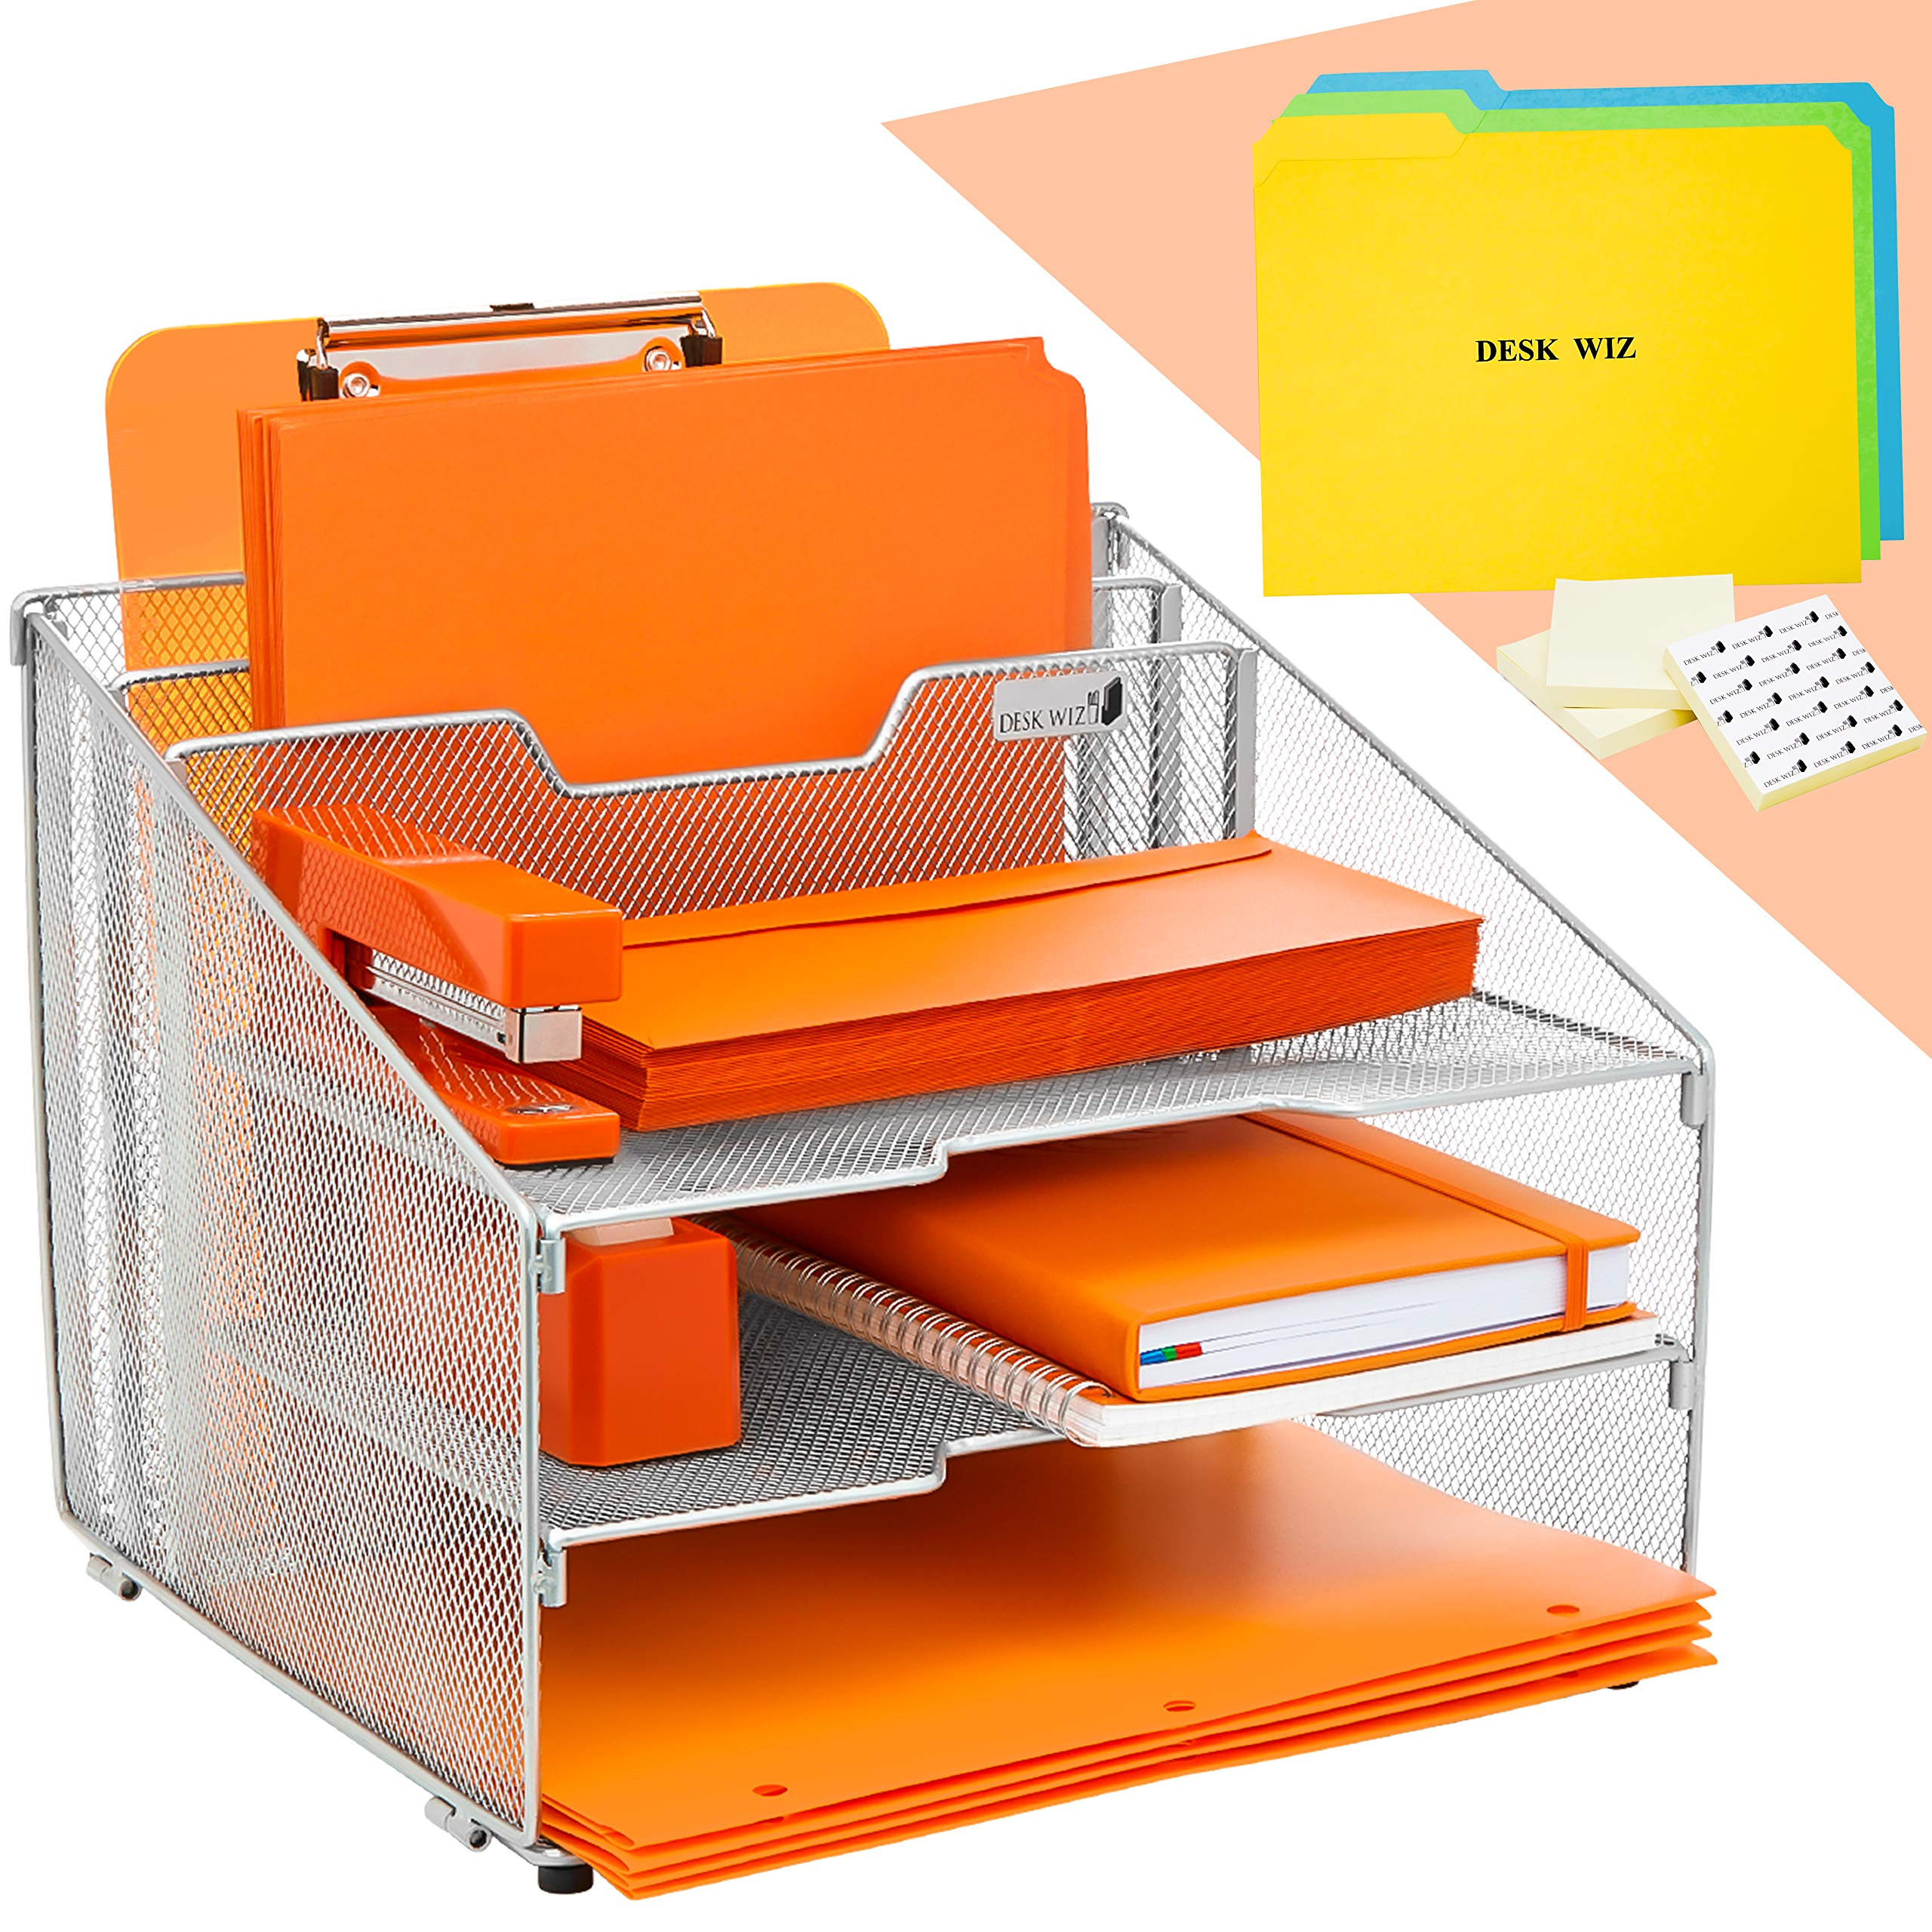 Desk Organizer File Folder Holder All-in-One with Non-Slip Rubber Feet by Desk Wiz | Silver Metal Mesh Office Desktop Supplies Accessories Organizer | Includes 3 Sticky Note Pads and 3 File Folders